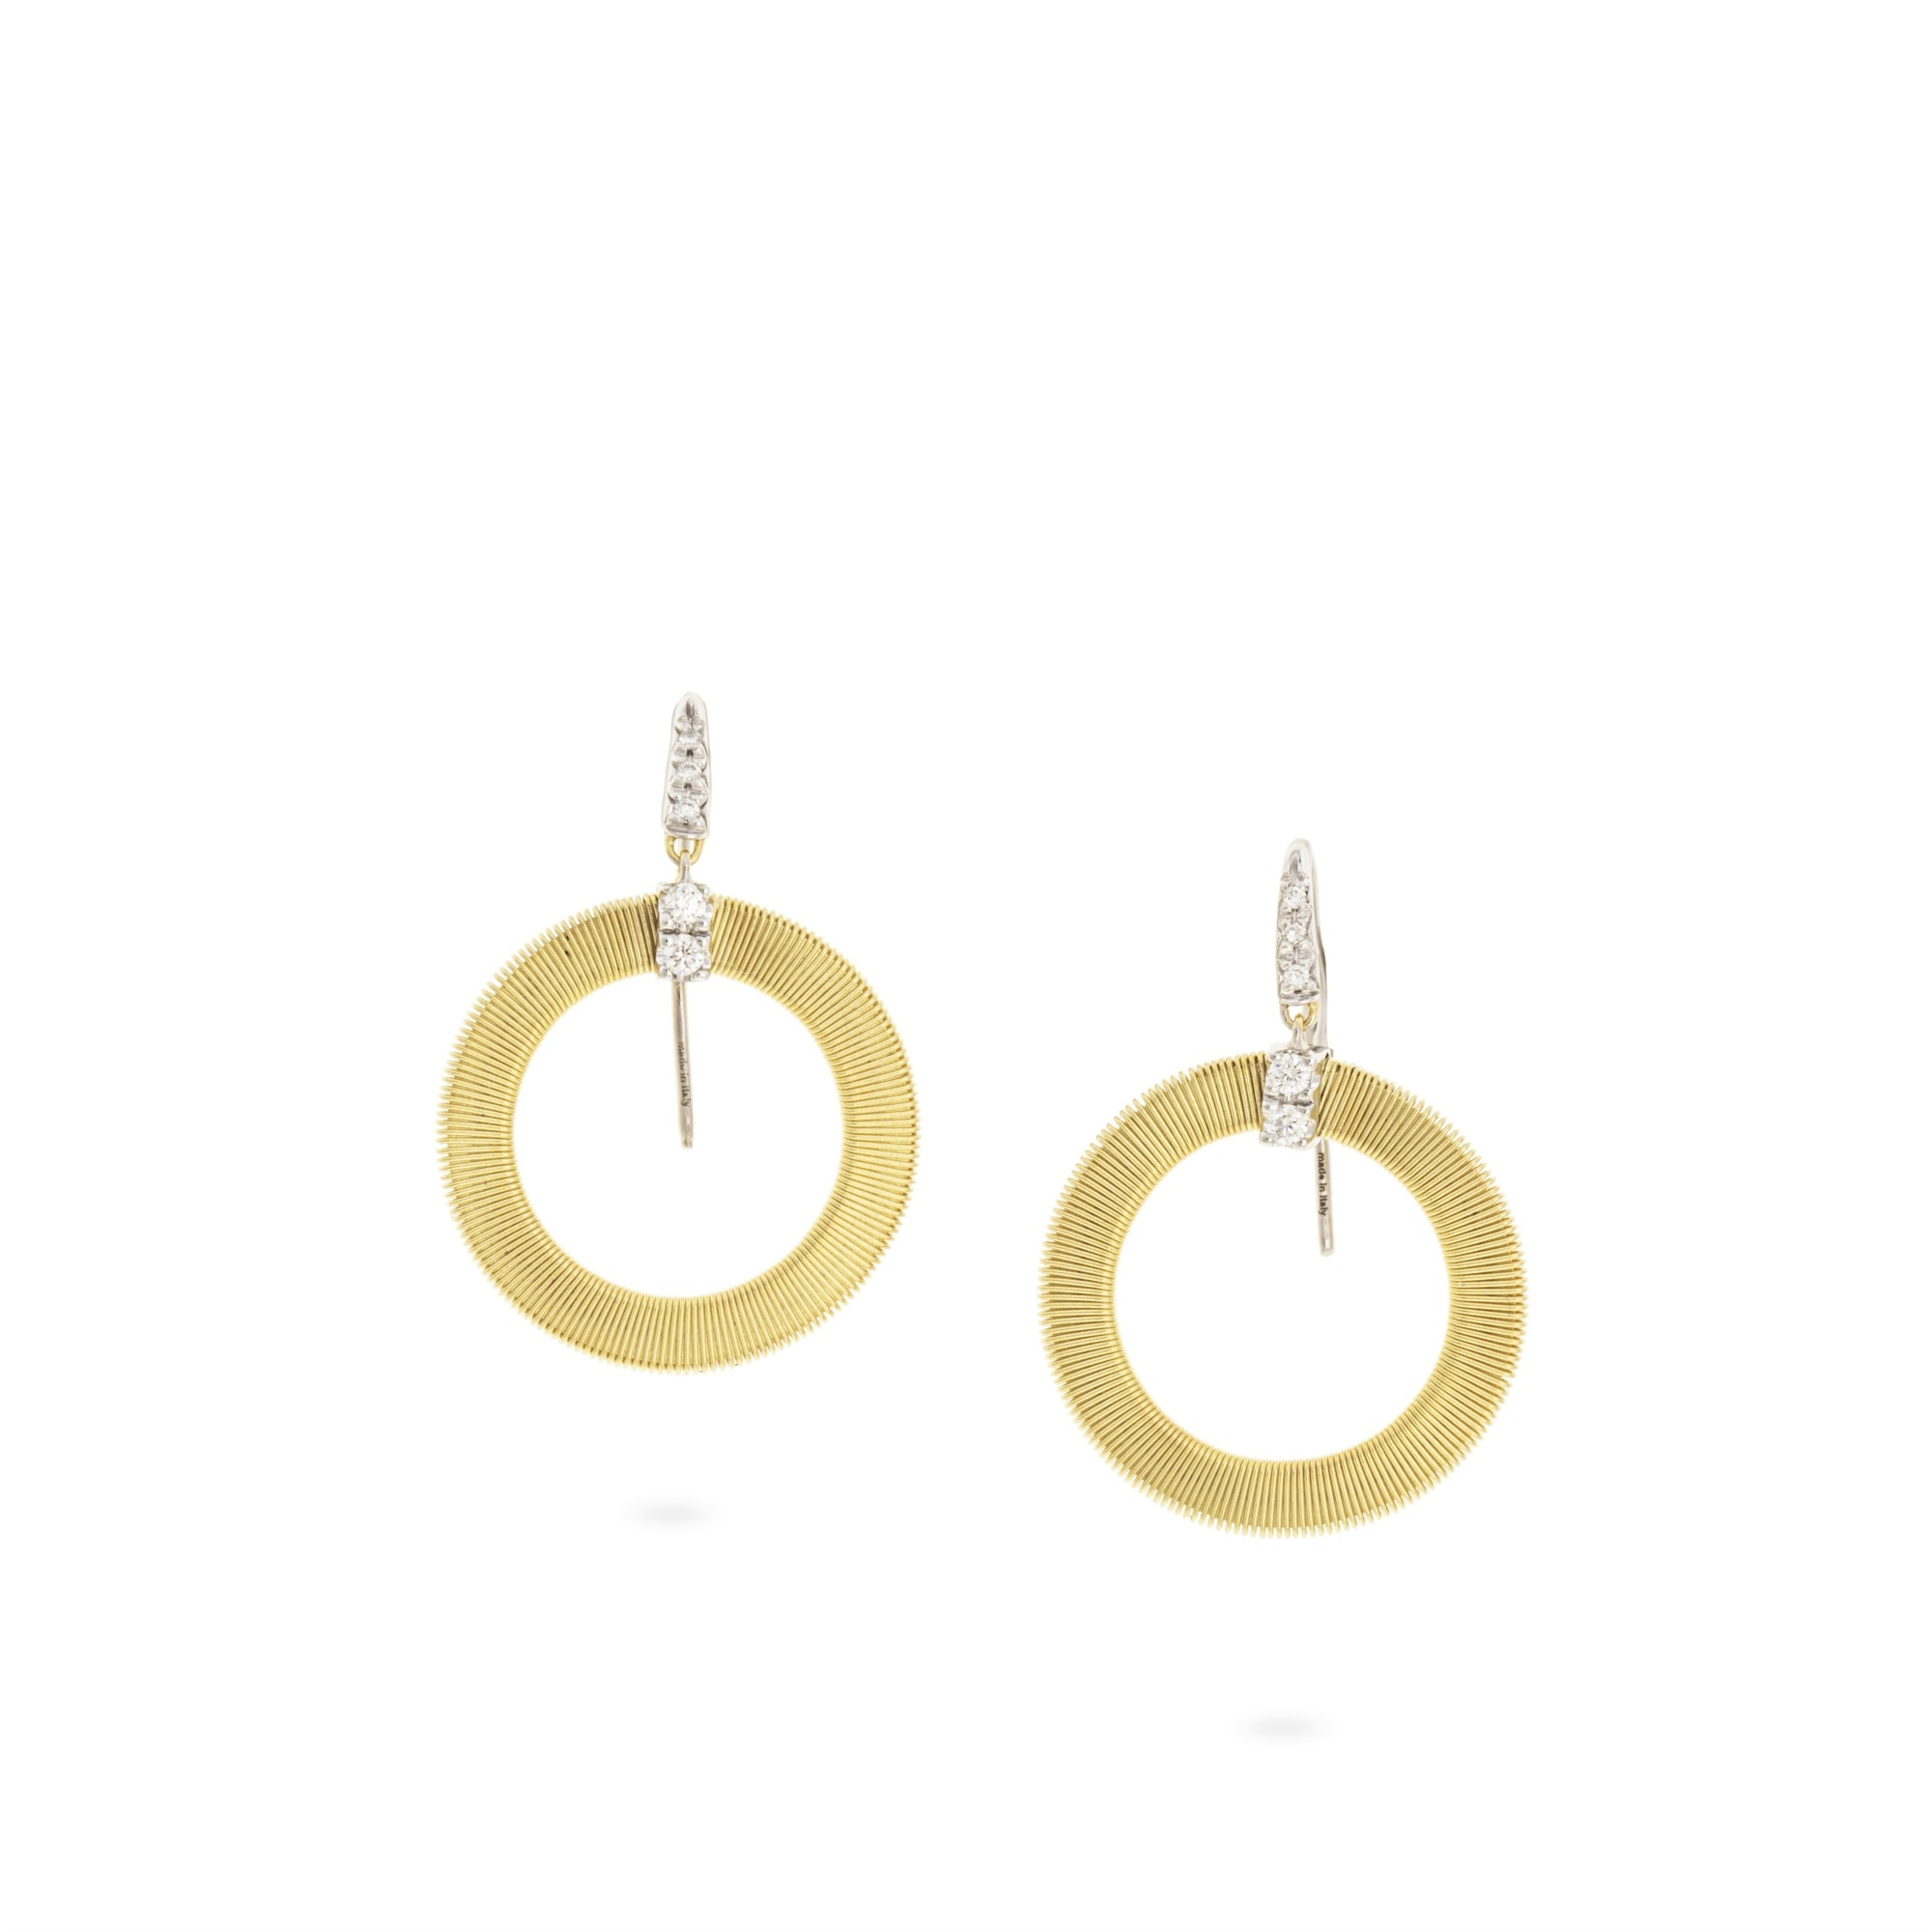 Marco Bicego 18K Yellow Gold .18cts  Diamonds Gold Earrings with Stones OG378-AB B YW